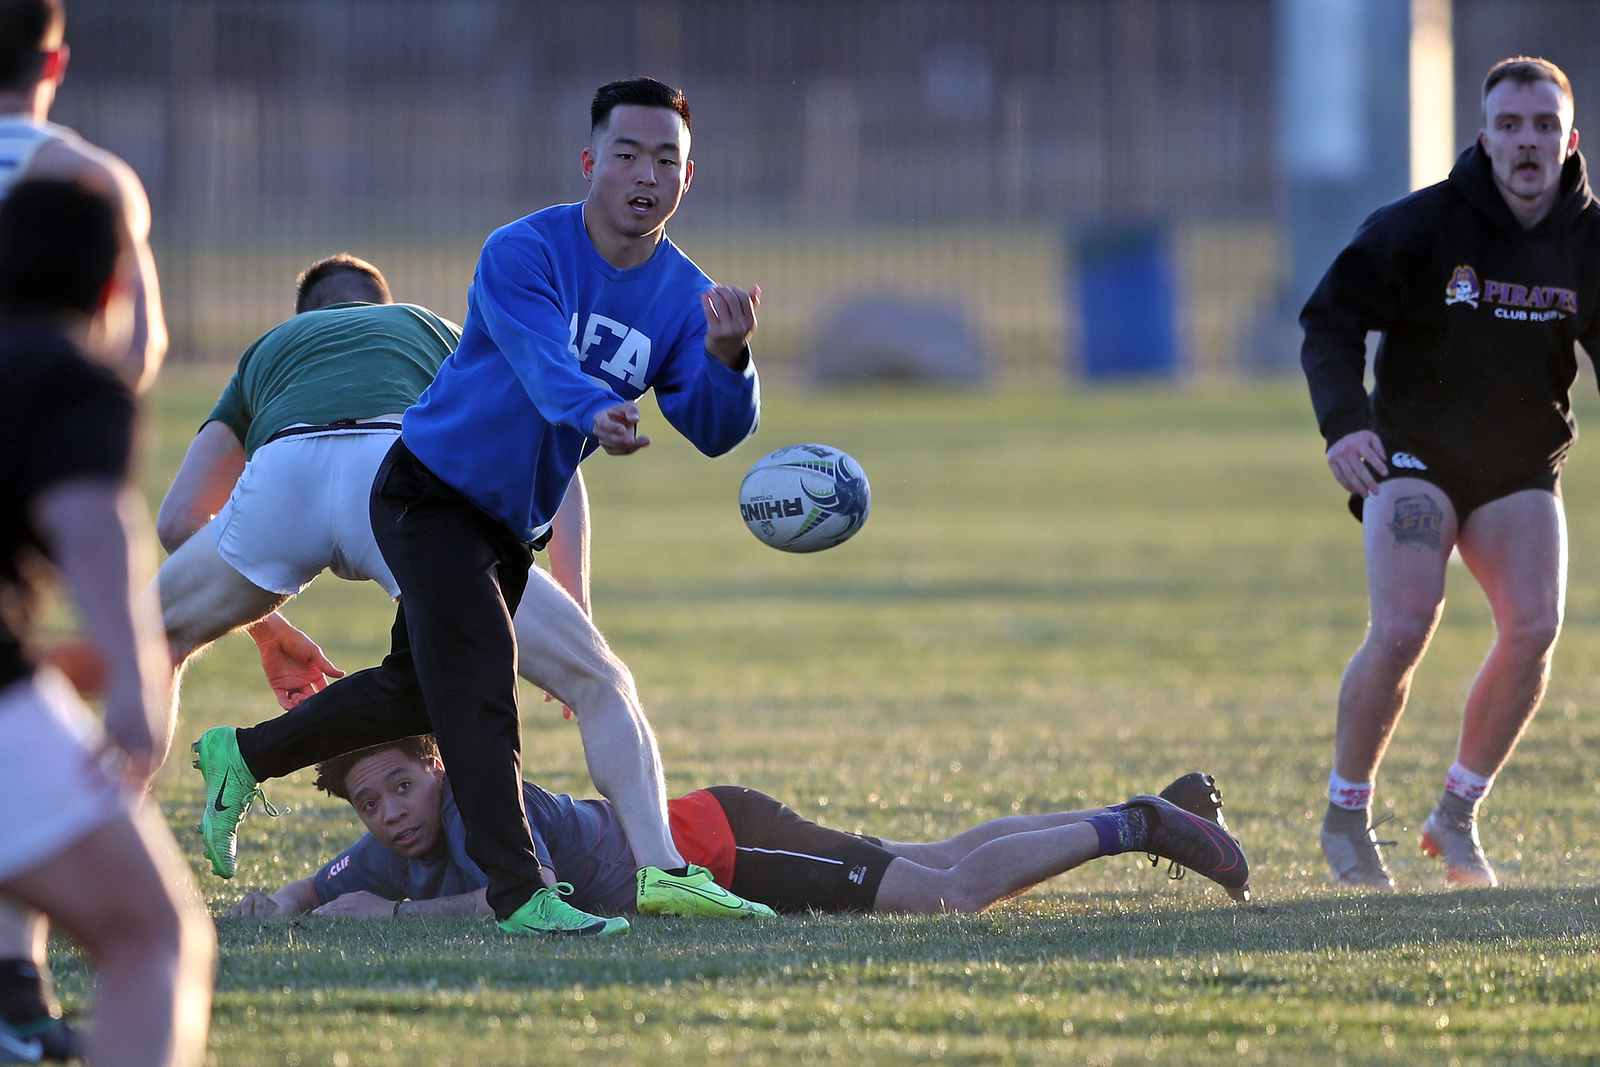 Denver Selects Rugby Men 2018 Las Vegas Invitational PriorT